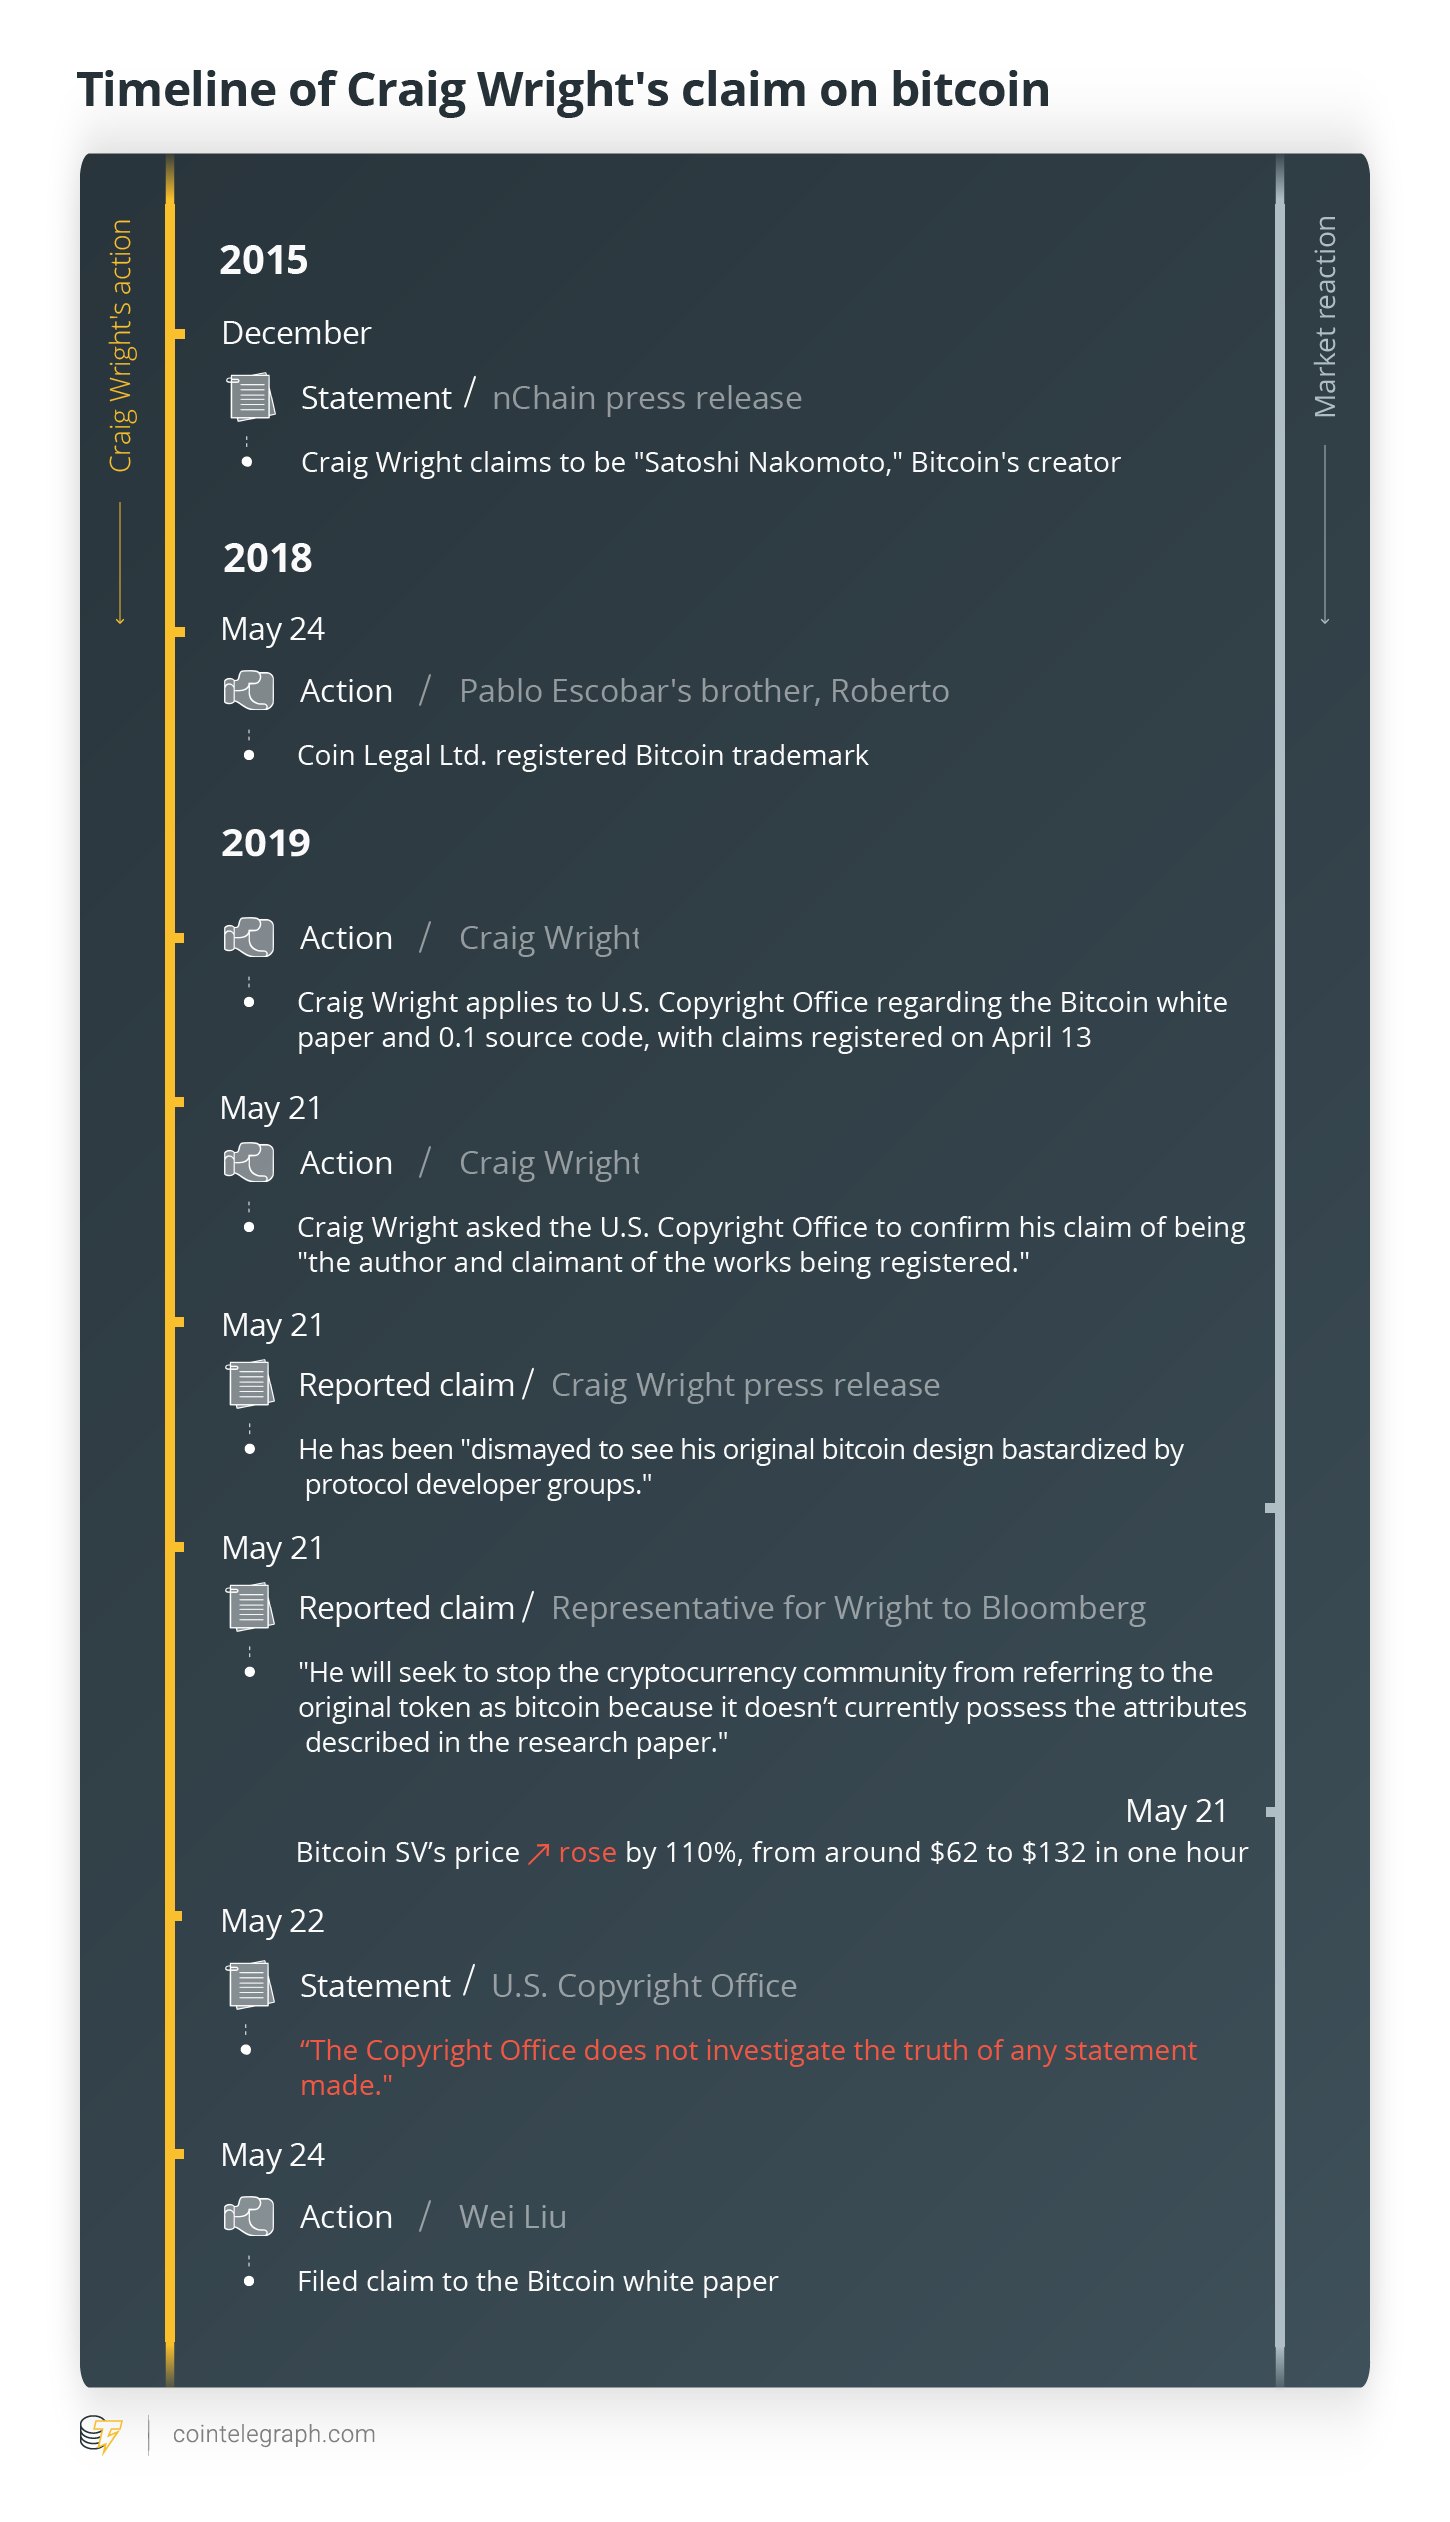 Timeline of Craig Write's claim on bitcoin